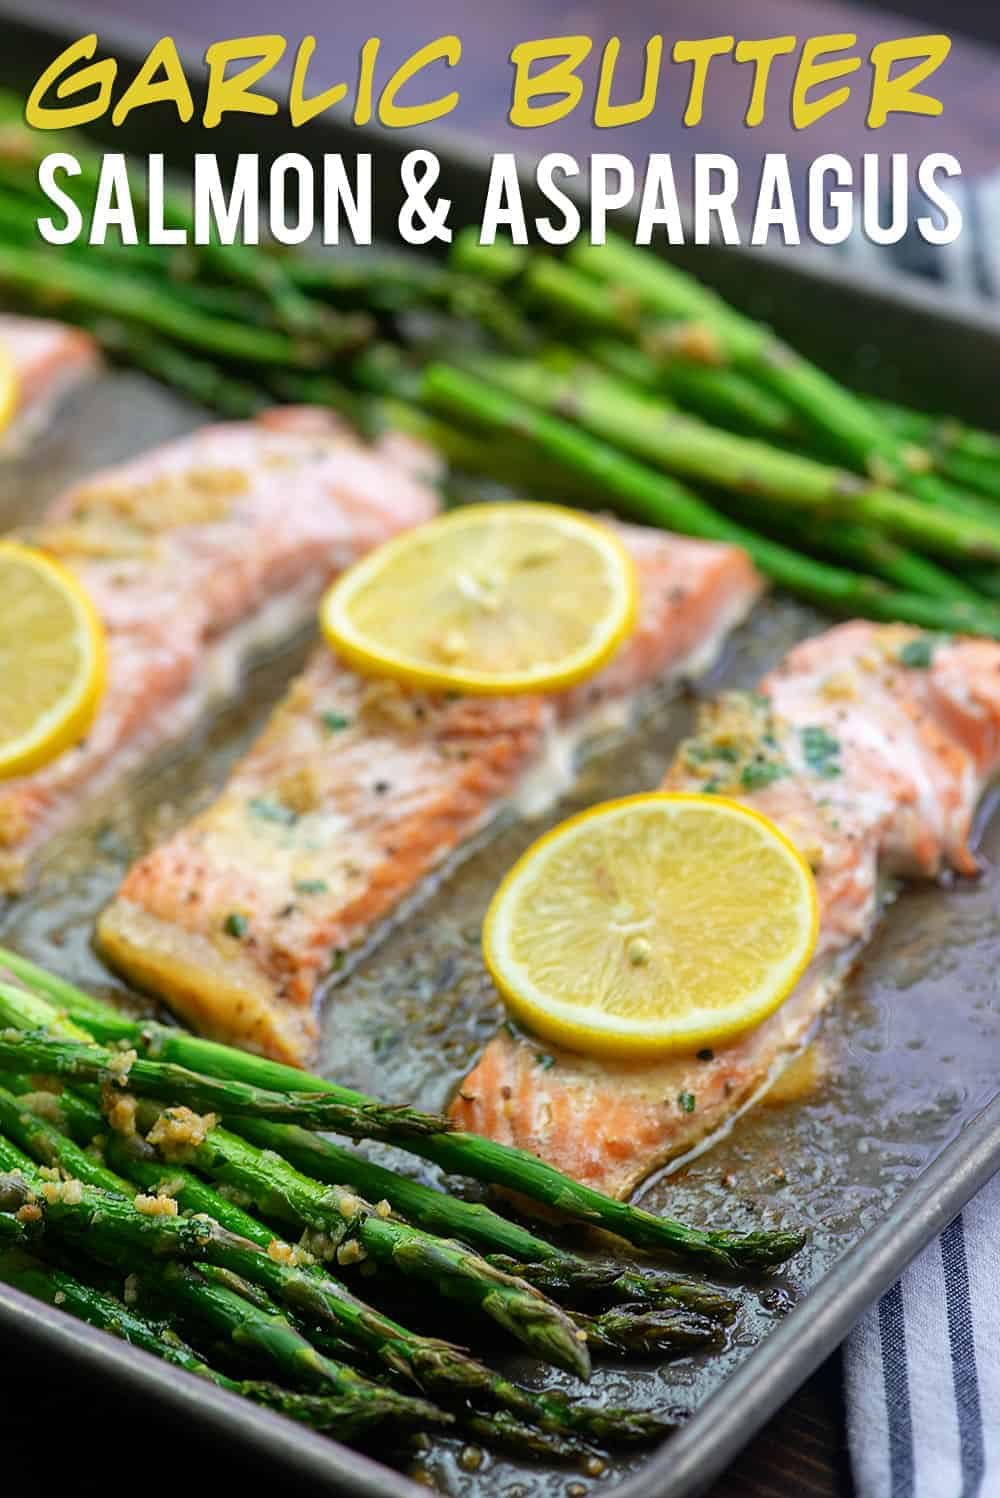 baked salmon and asparagus on sheet pan.